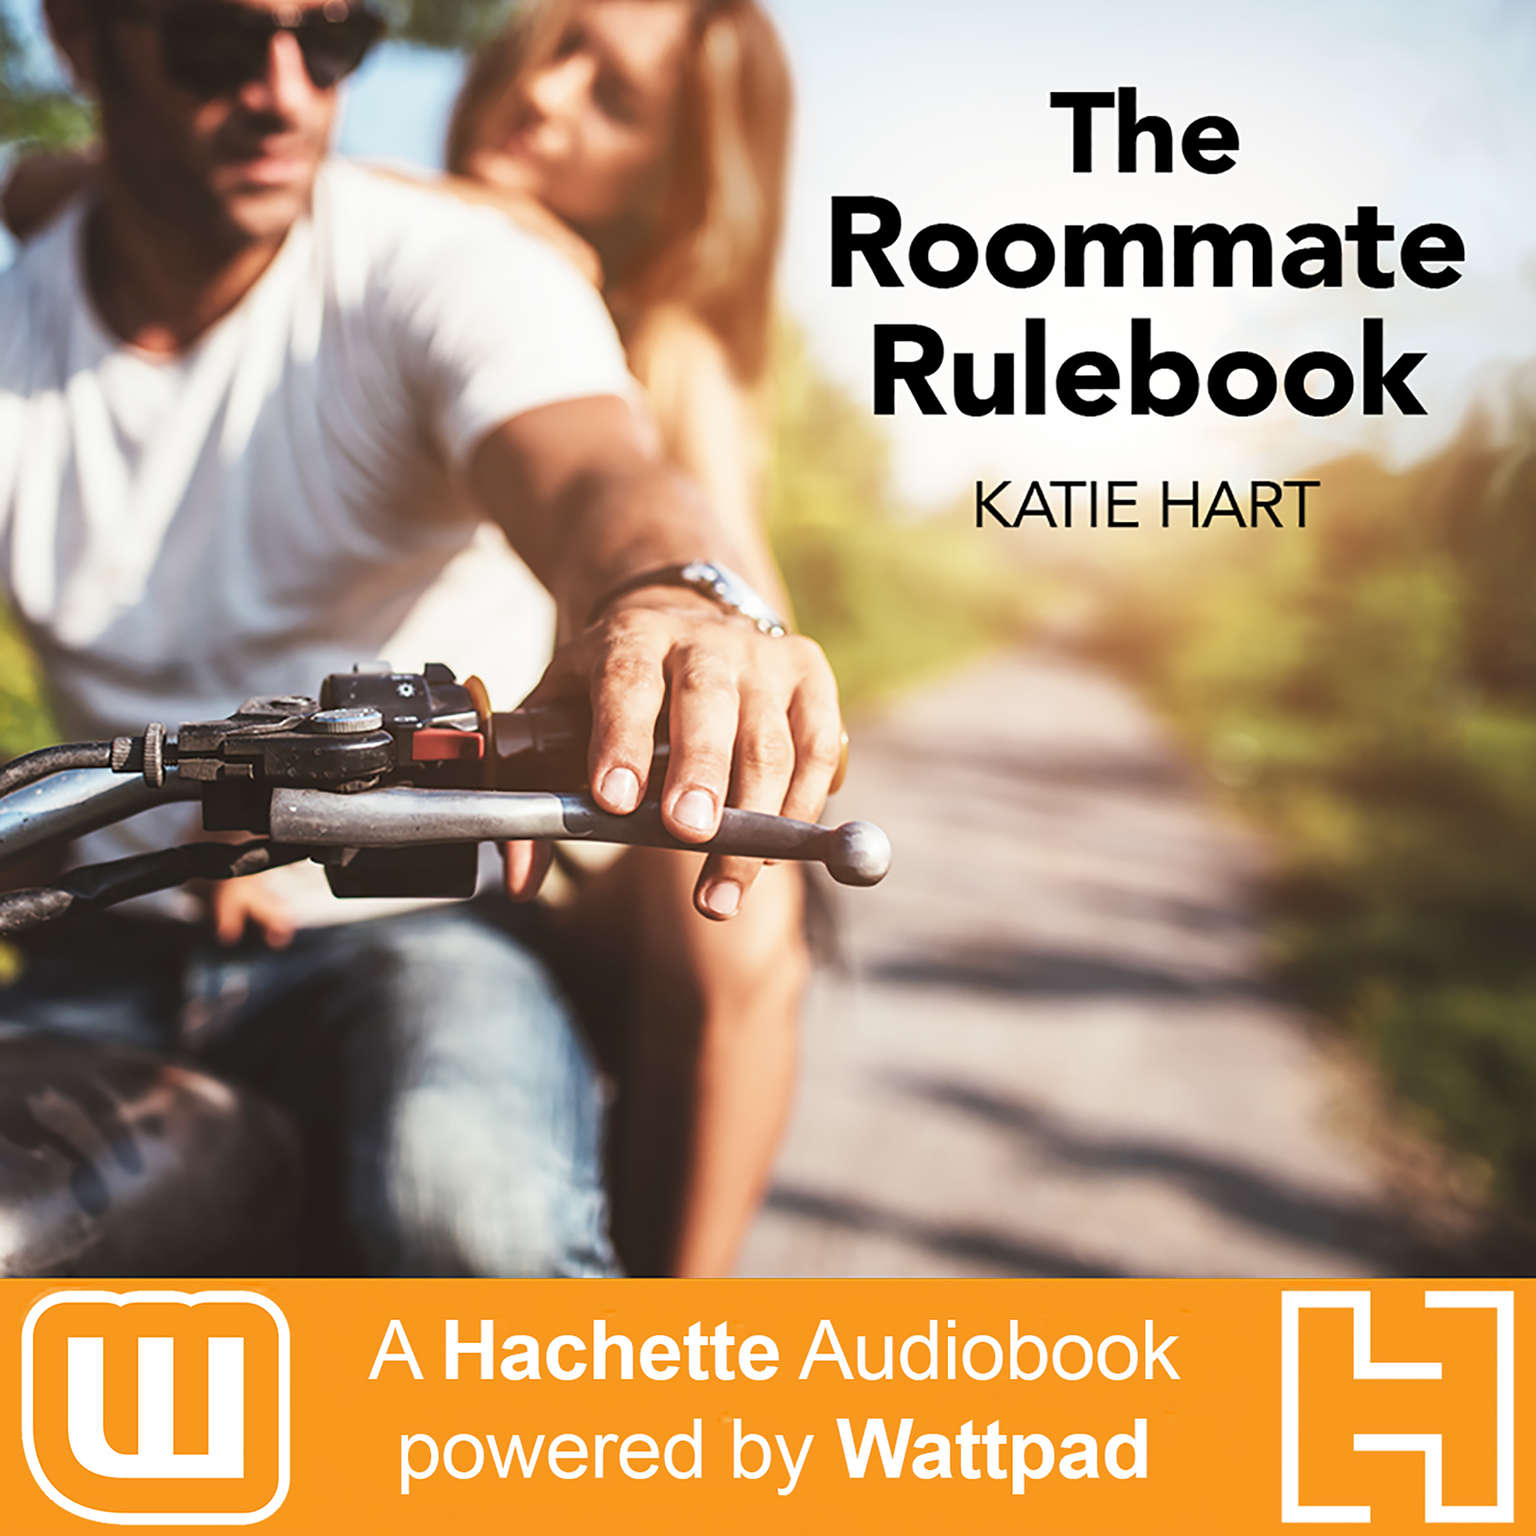 The Roommate Rulebook: A Hachette Audiobook powered by Wattpad Production Audiobook, by Katie Hart